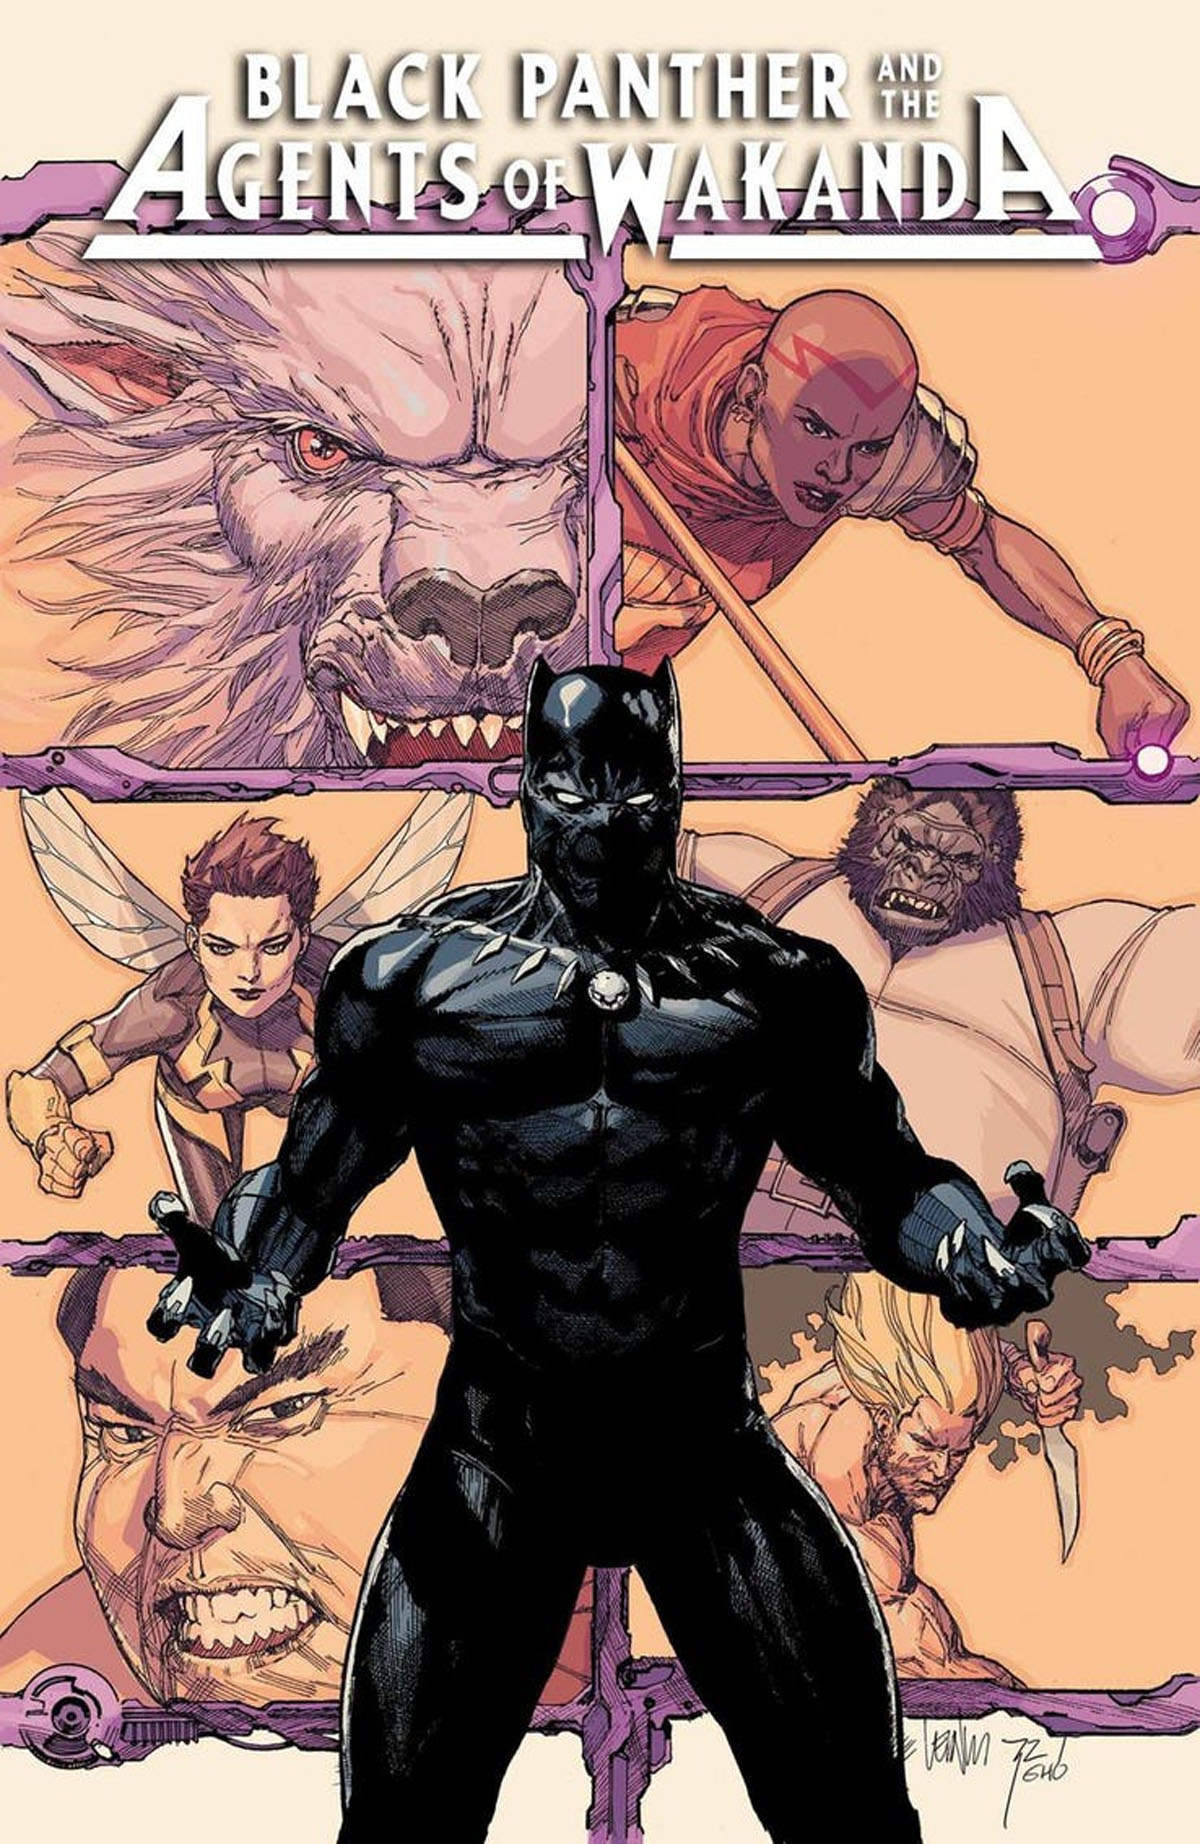 Black Panther and the Agents of Wakanda #1 cover b